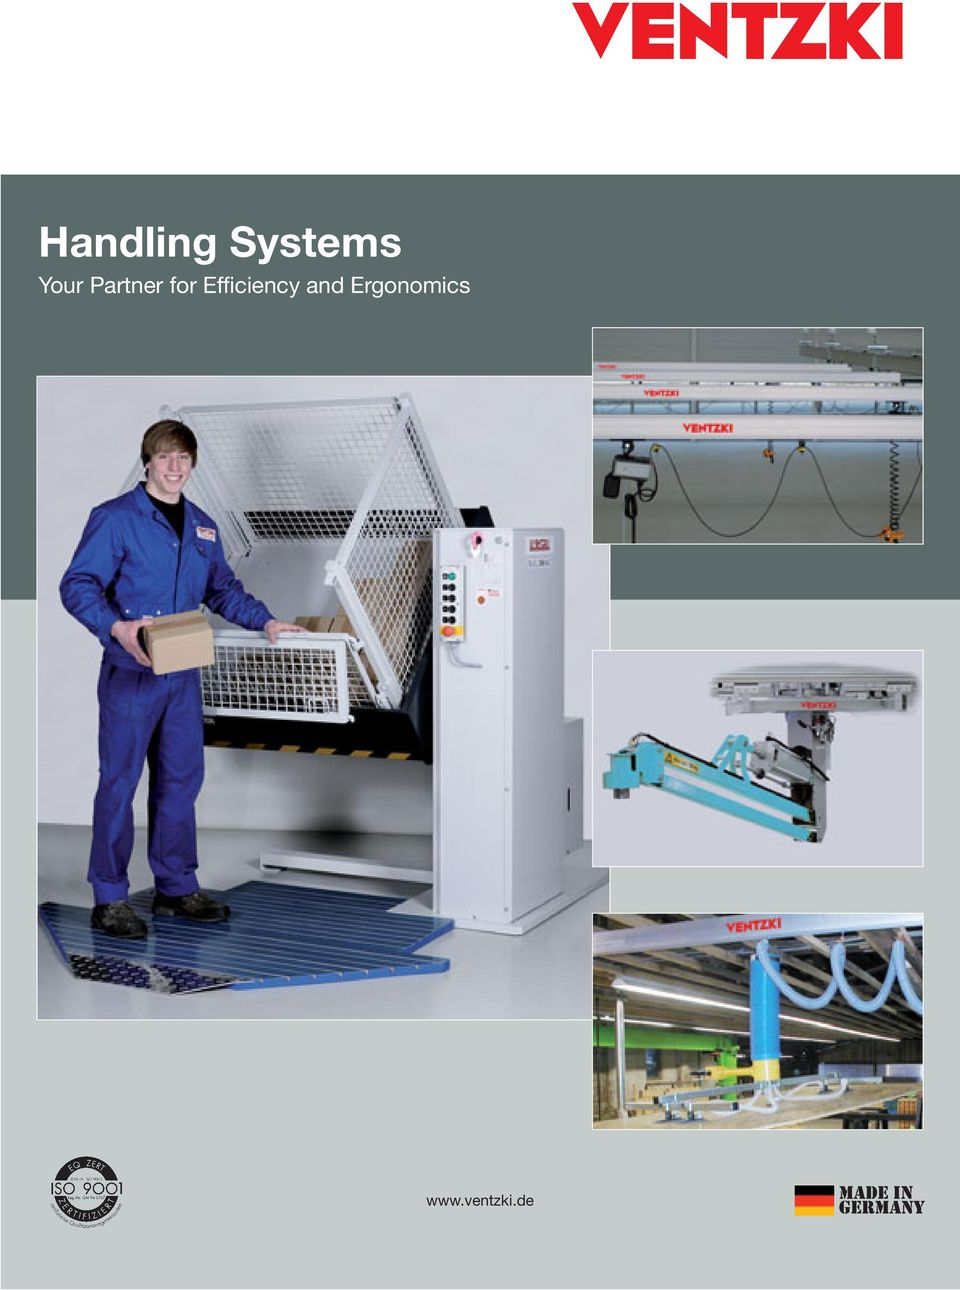 Handling Systems Your Partner For Efficiency And Ergonomics Pdf Spannfixcircuitboardholder 2 Welcome To Ventzki Dear Customer Certified Quality Management Acc Iso 90012000 Design Manufacture In Compliance With Valid